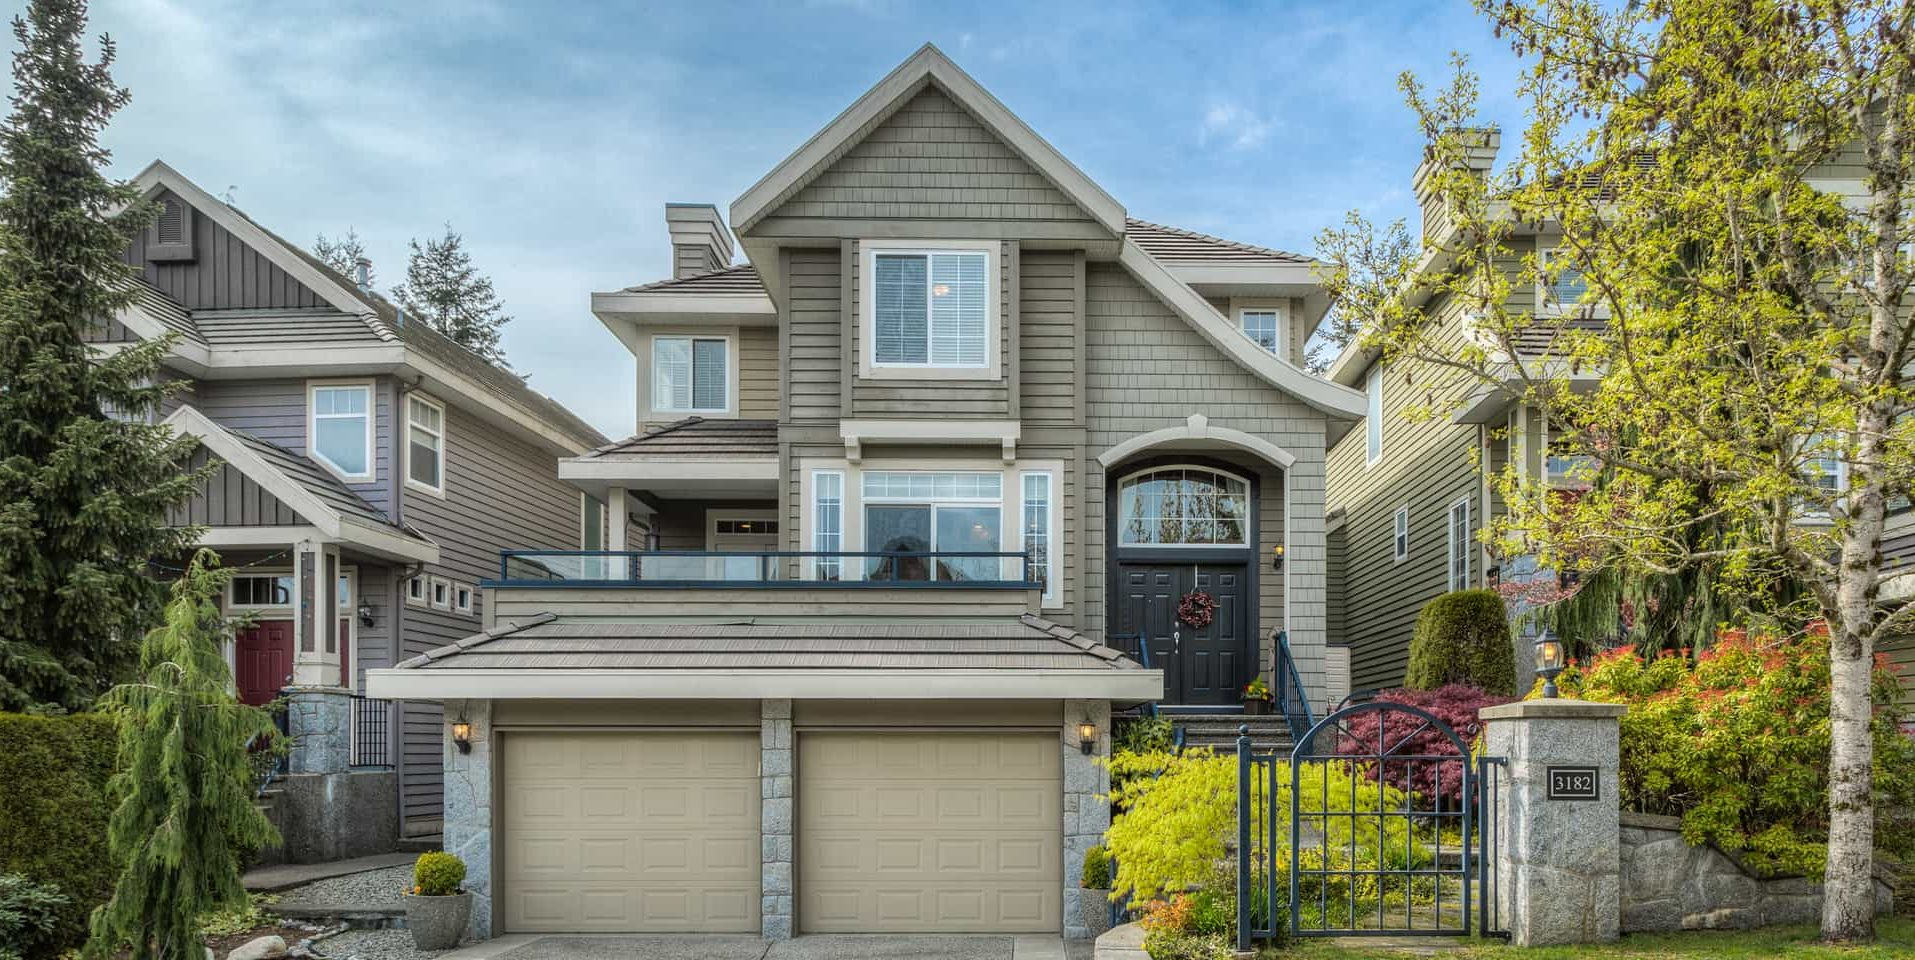 3182-Caulfield-Ridge-Coquitlam-360hometours-01